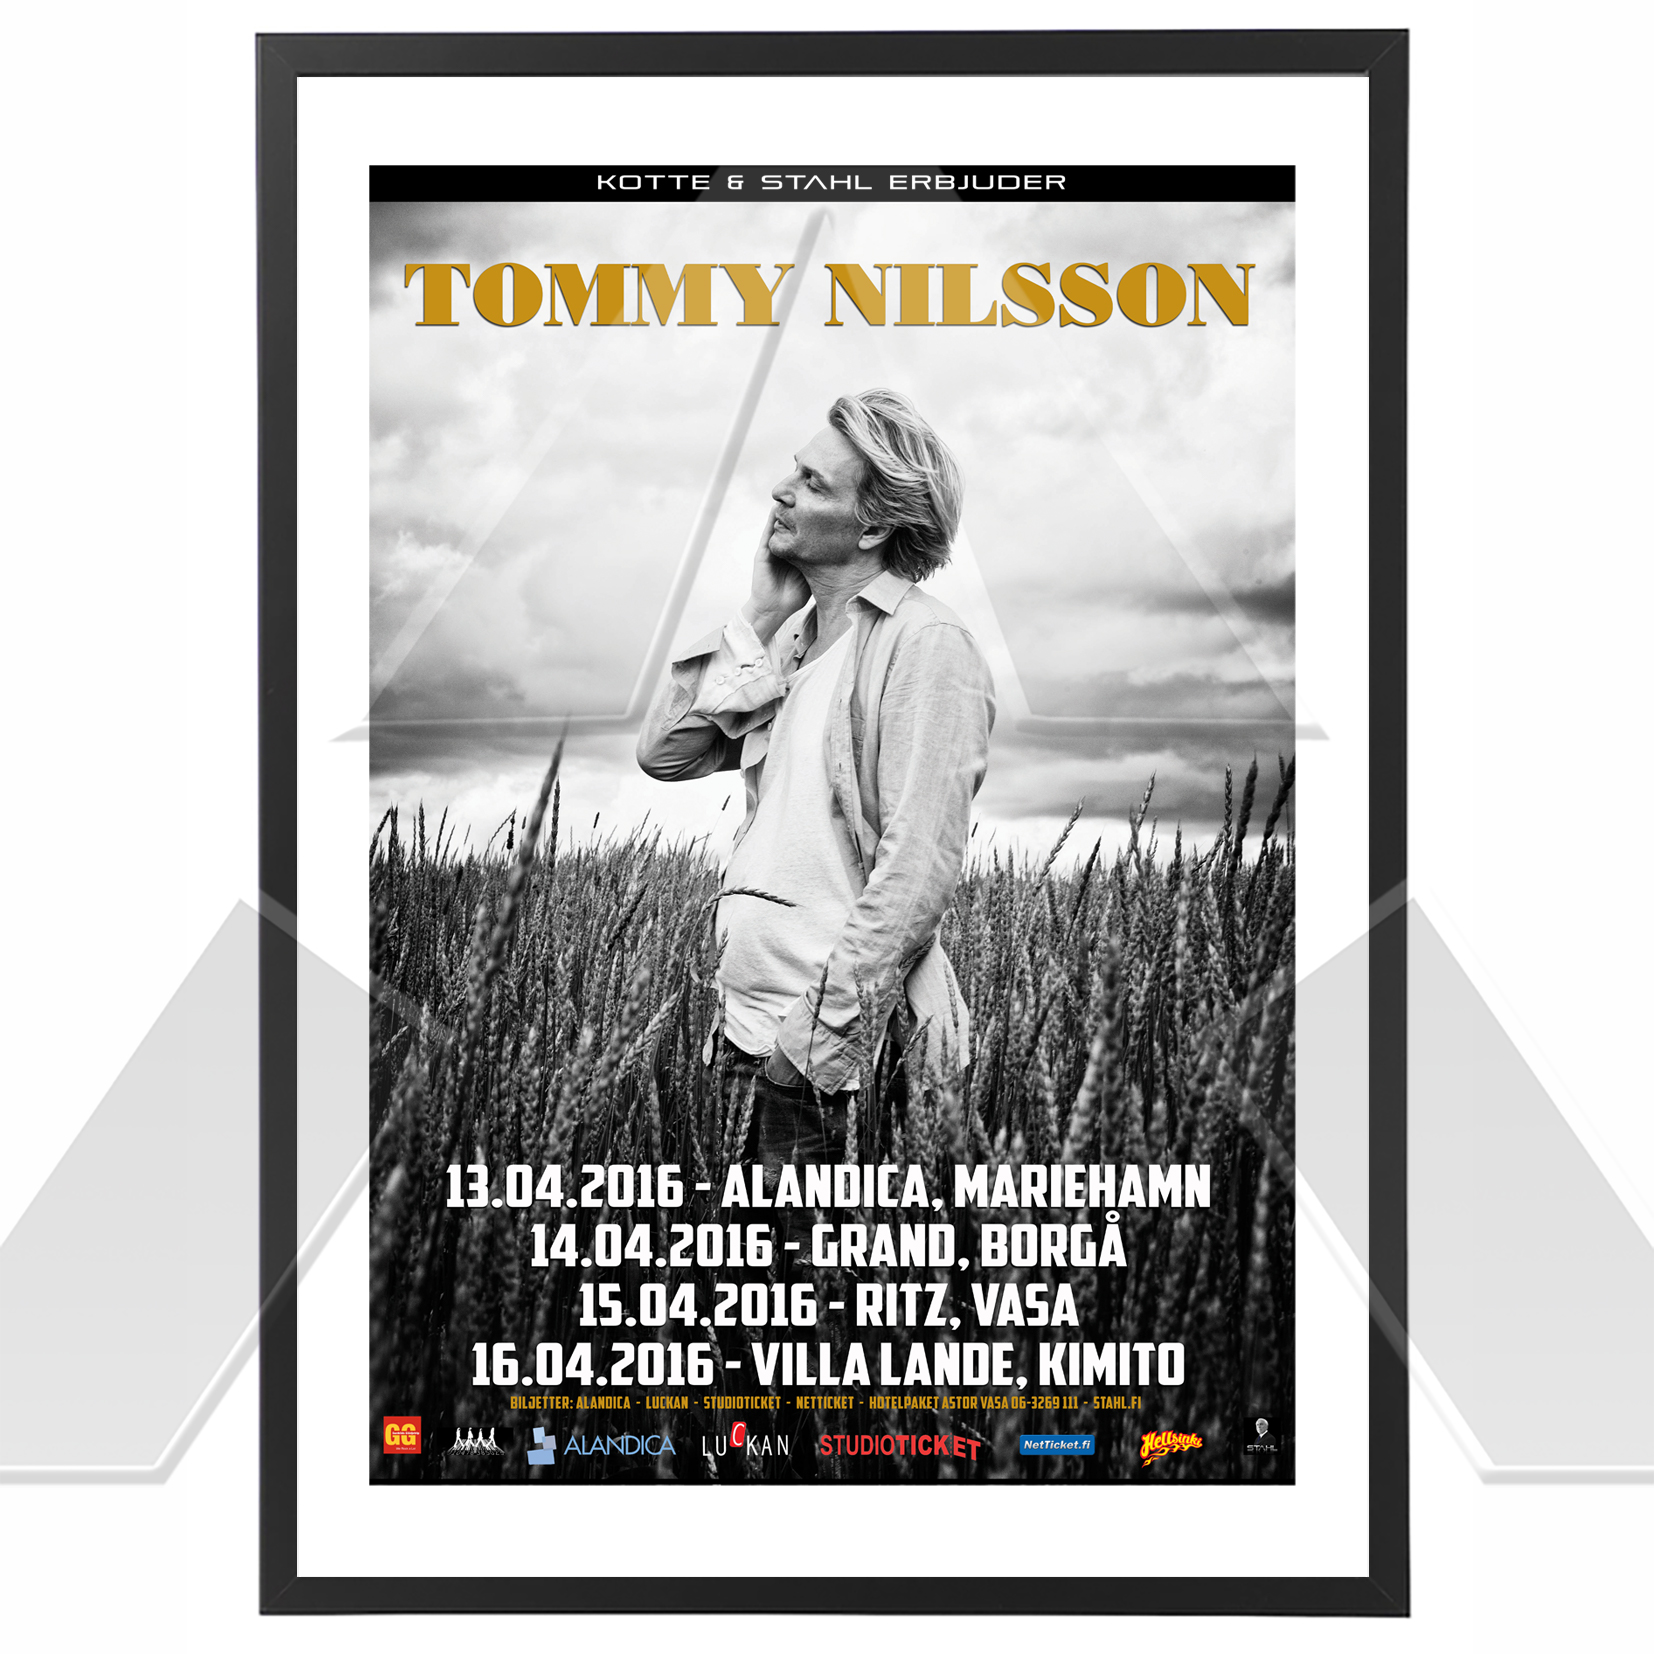 Tommy Nilsson ★ Finland 2016 (tour poster)